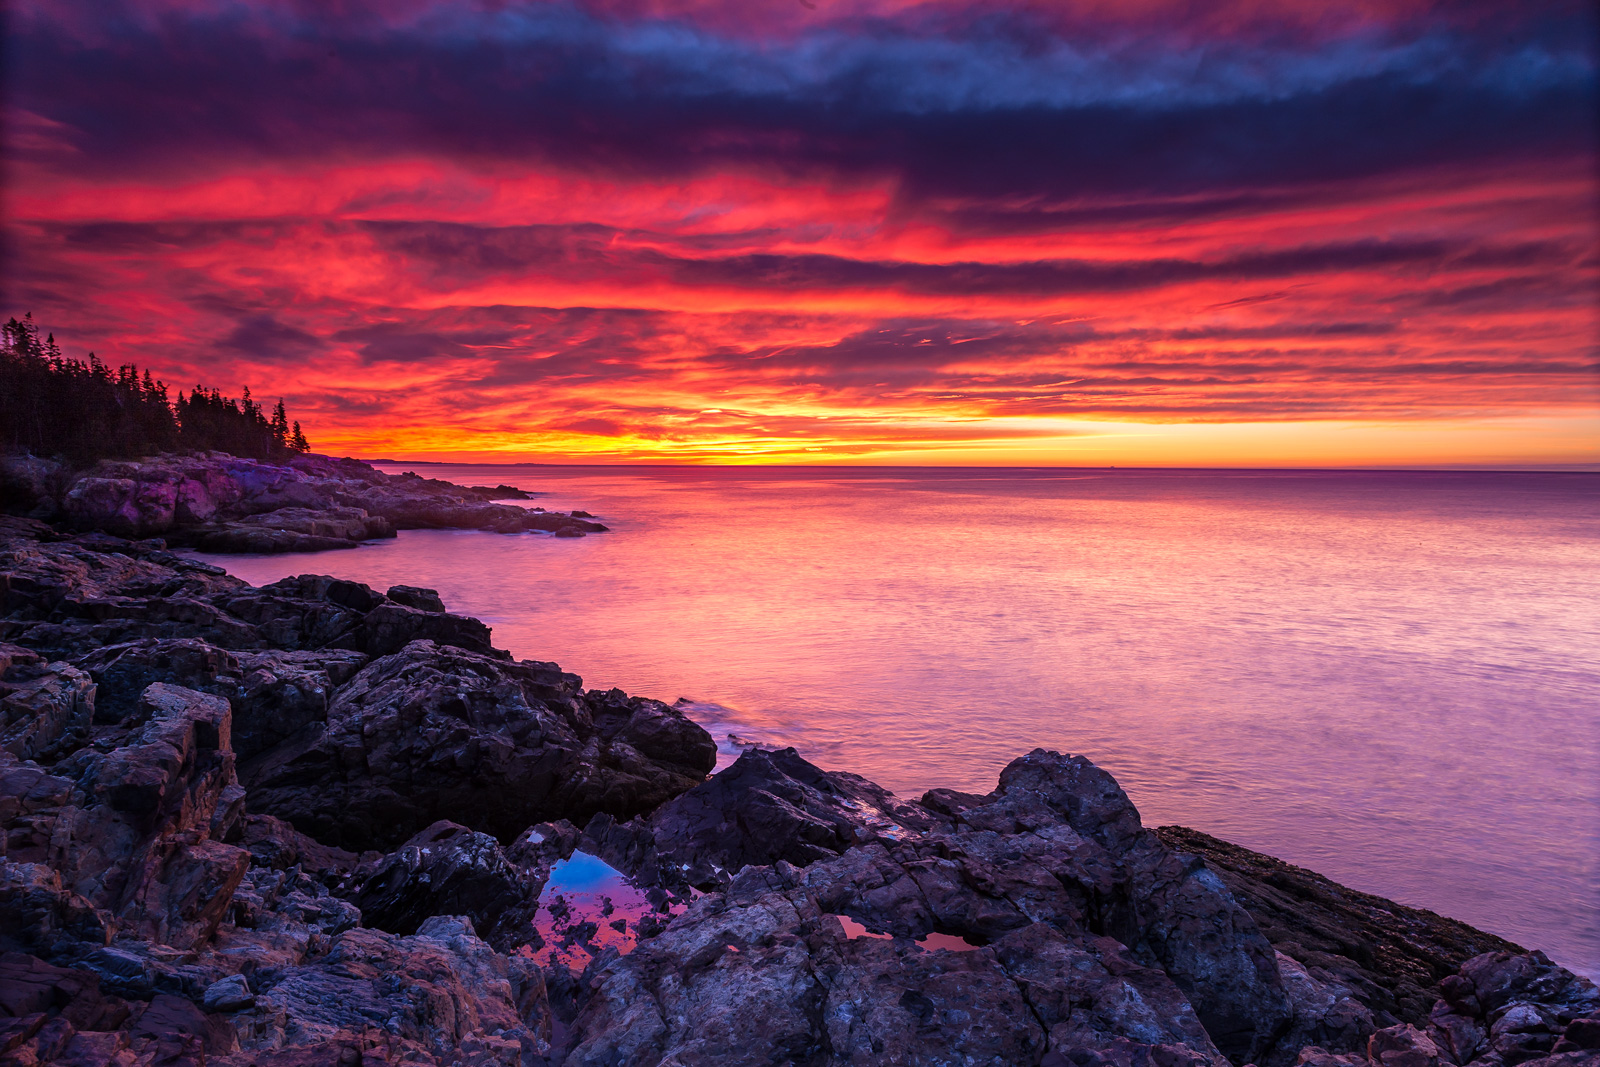 A dramatic red sunrise over the rocky coast of the Atlantic ocean at Acadia National Park on the Maine Coast.